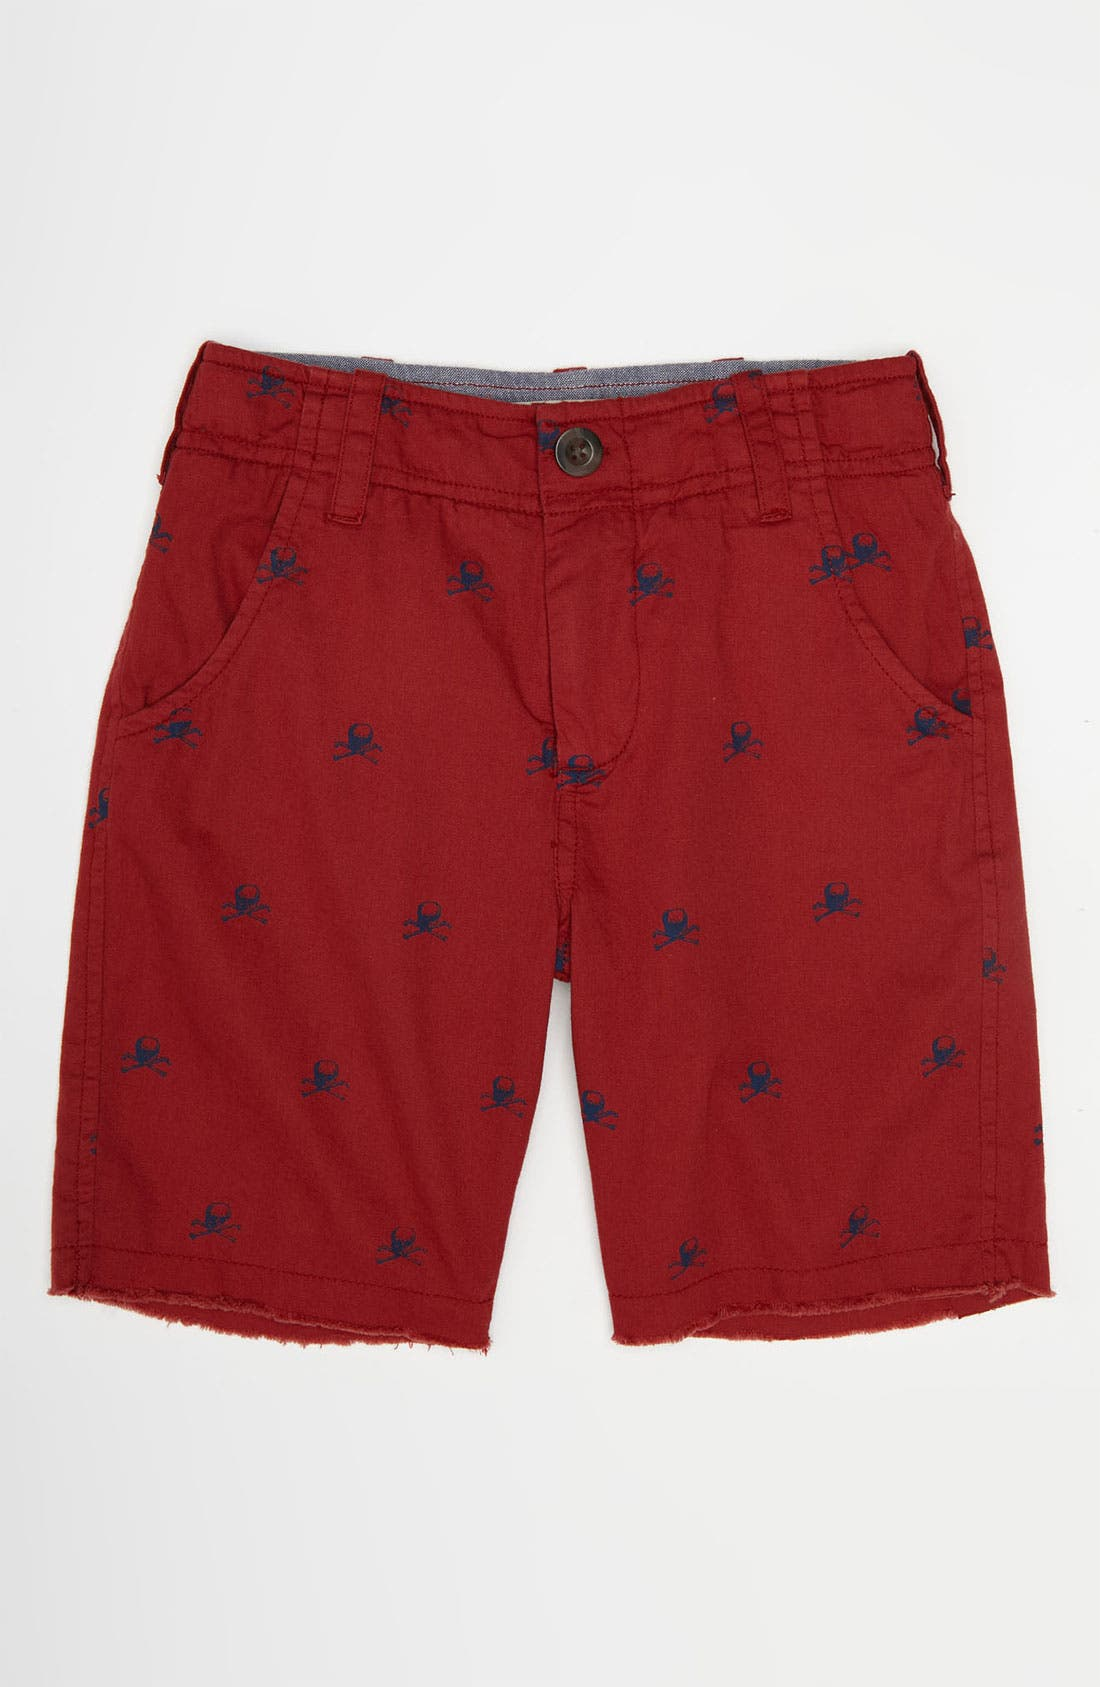 Alternate Image 1 Selected - Peek 'Plymouth' Shorts (Toddler, Little Boys & Big Boys)